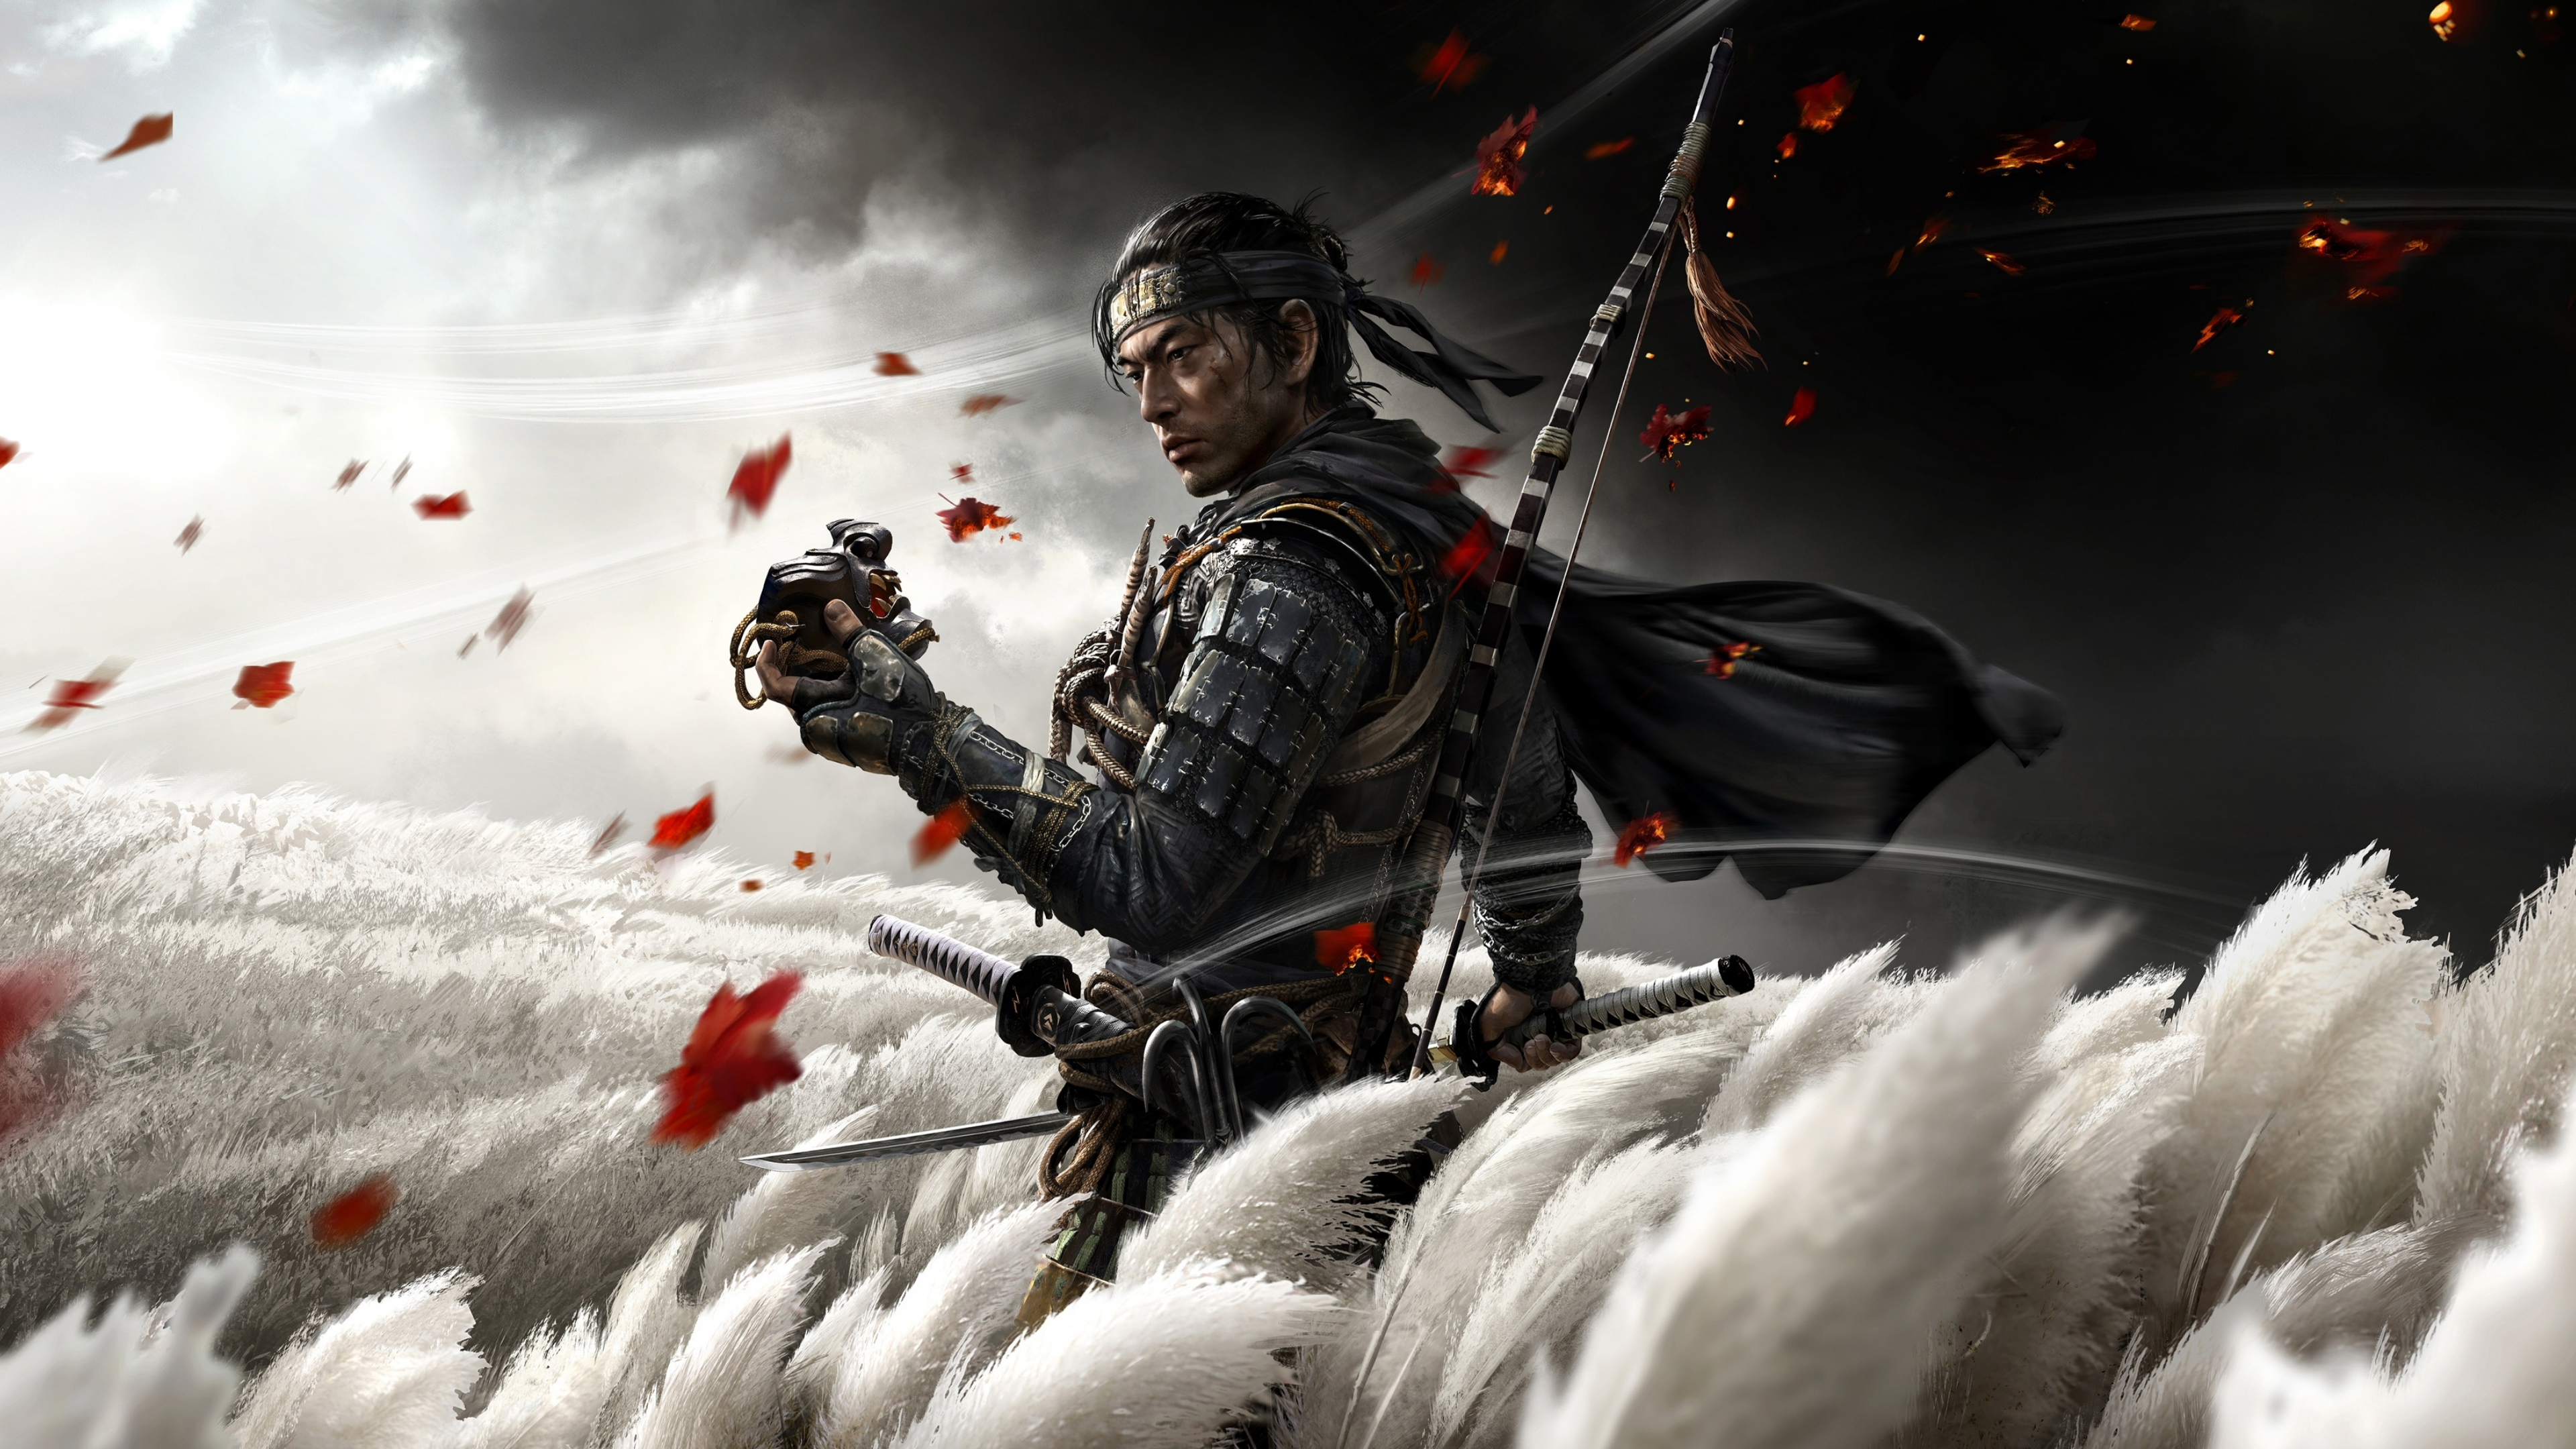 2560x1080 Ghost Of Tsushima 2020 2560x1080 Resolution Wallpaper Hd Games 4k Wallpapers Images Photos And Background